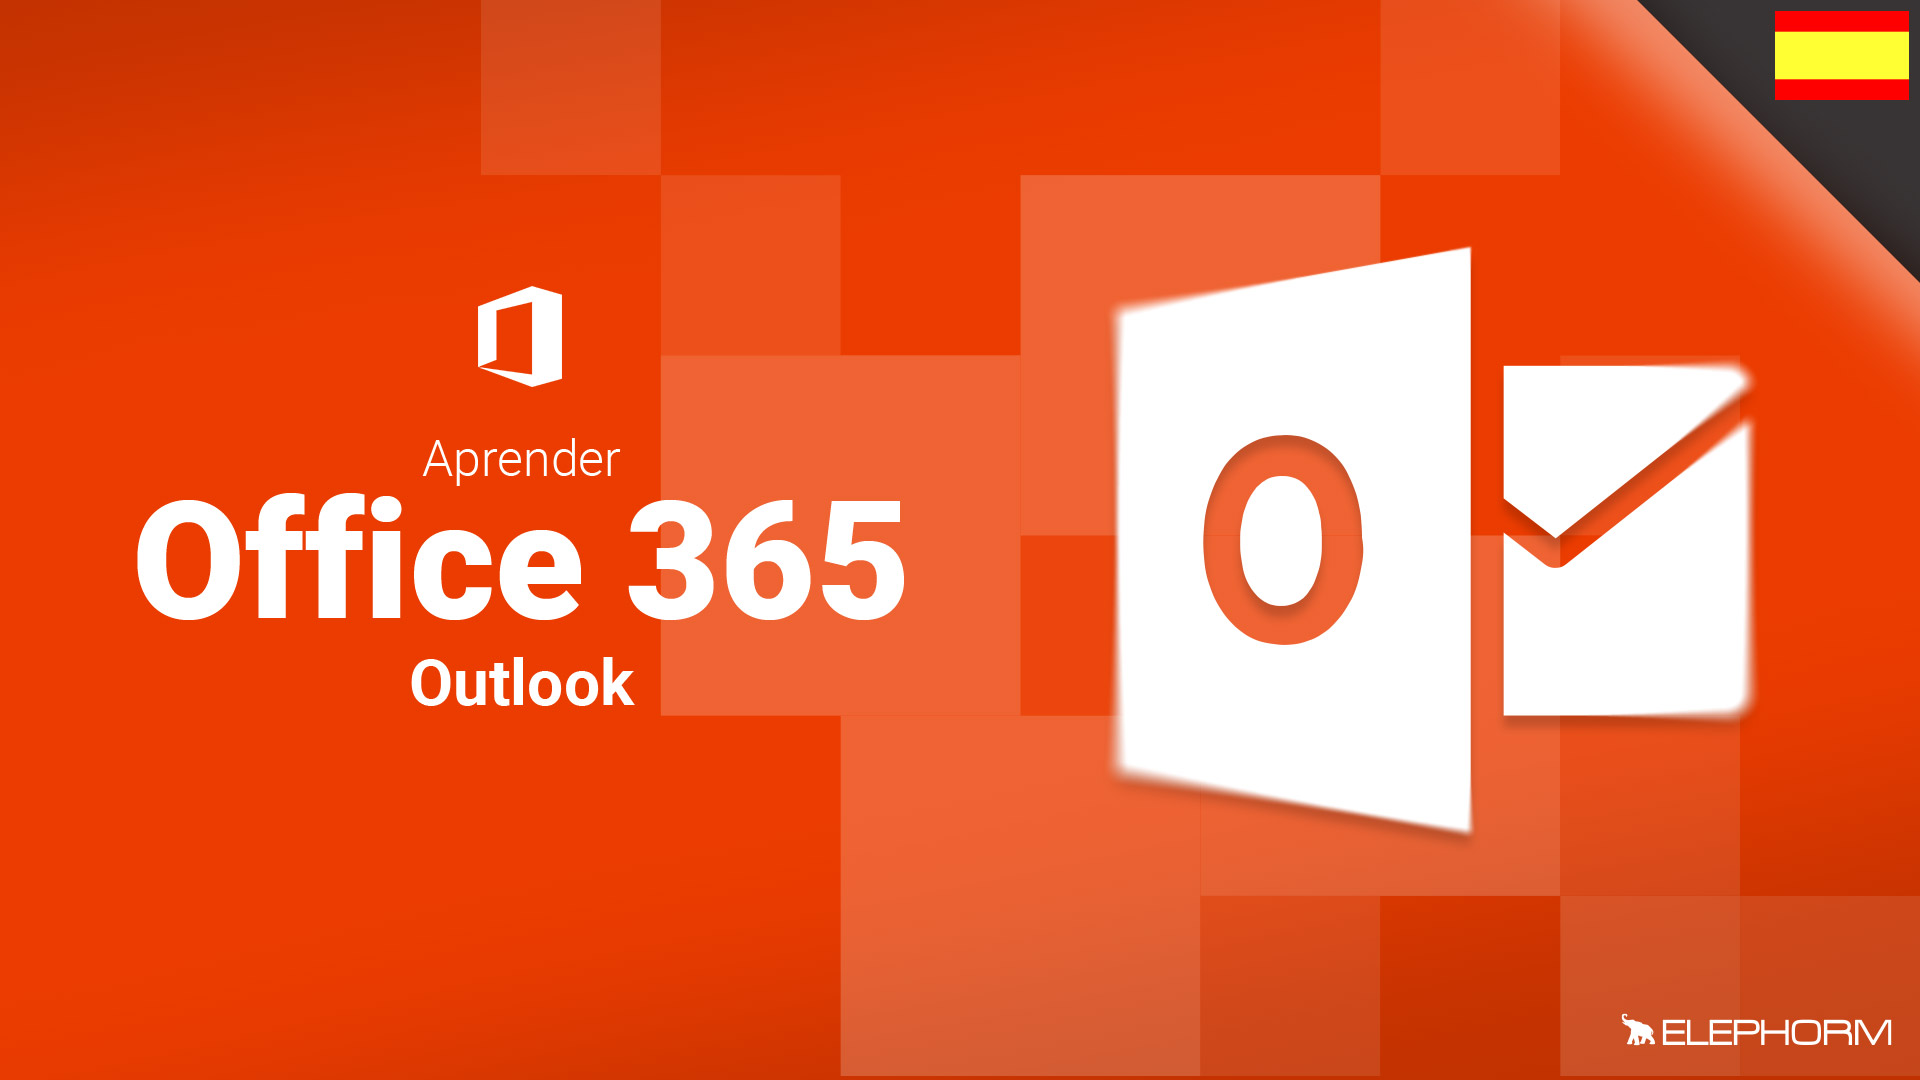 Outlook Online en Español - Aprender Office 365